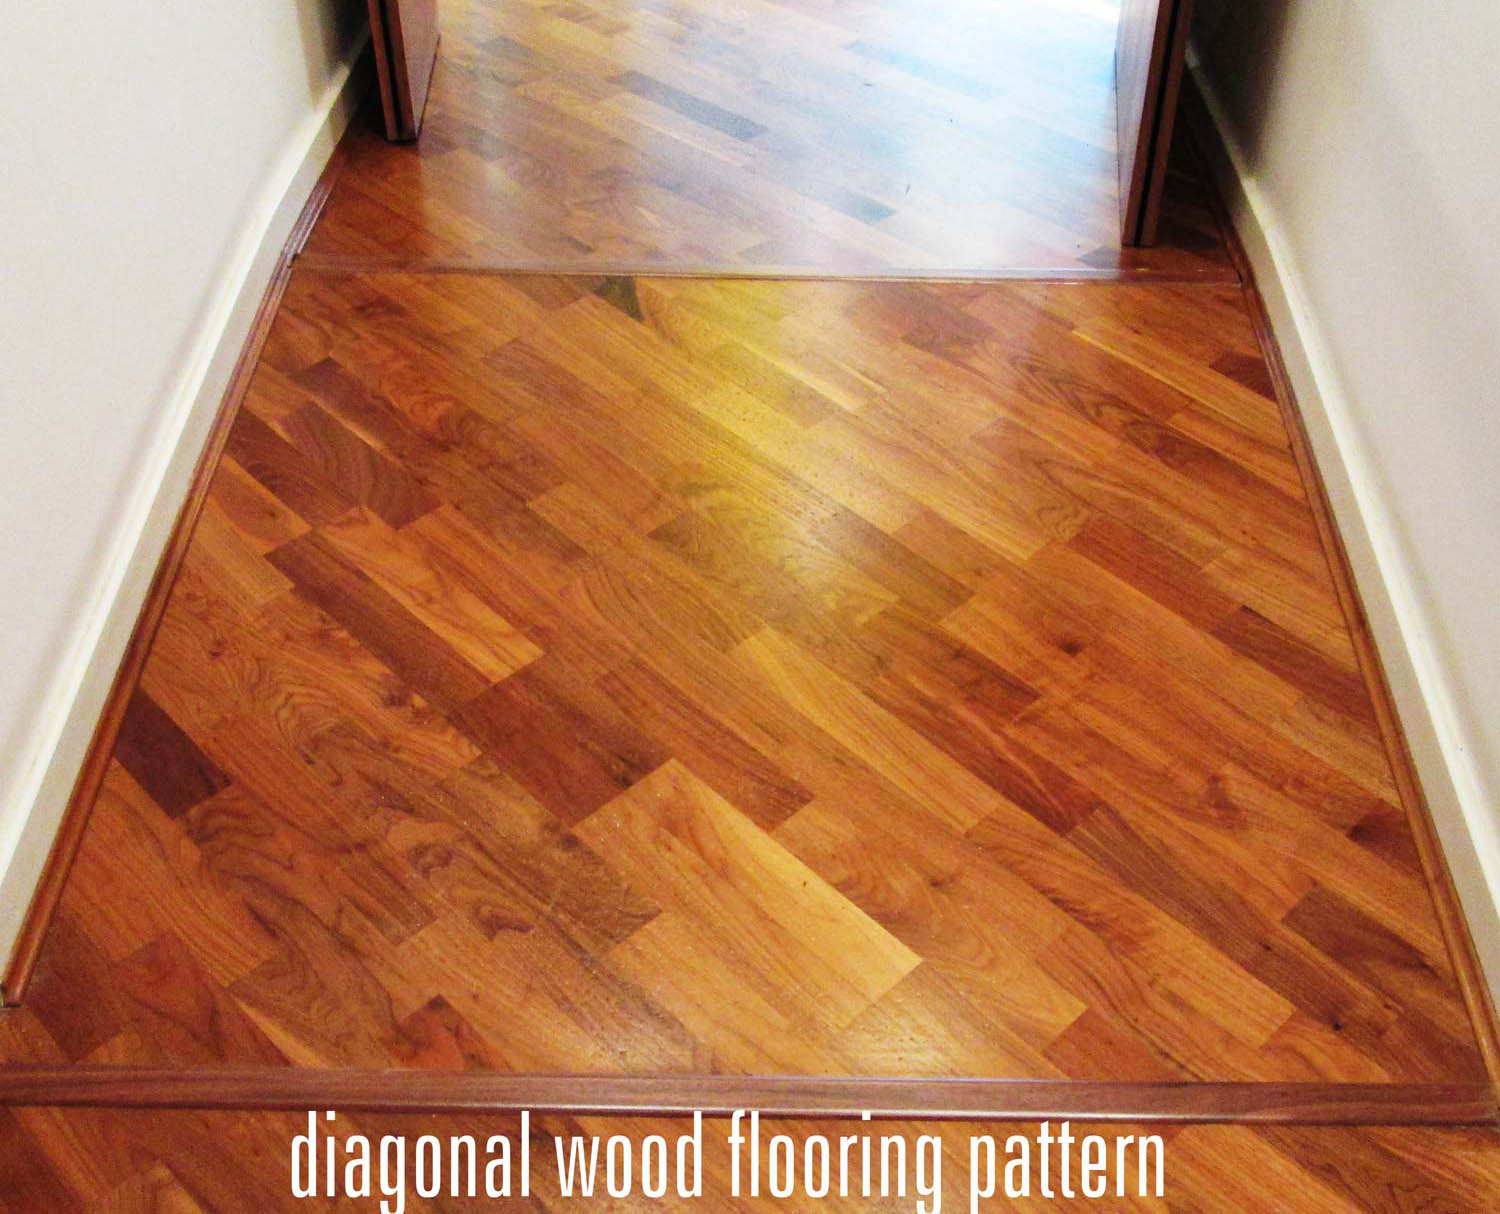 the 7 most common wood flooring patterns wood floor fitting. Black Bedroom Furniture Sets. Home Design Ideas